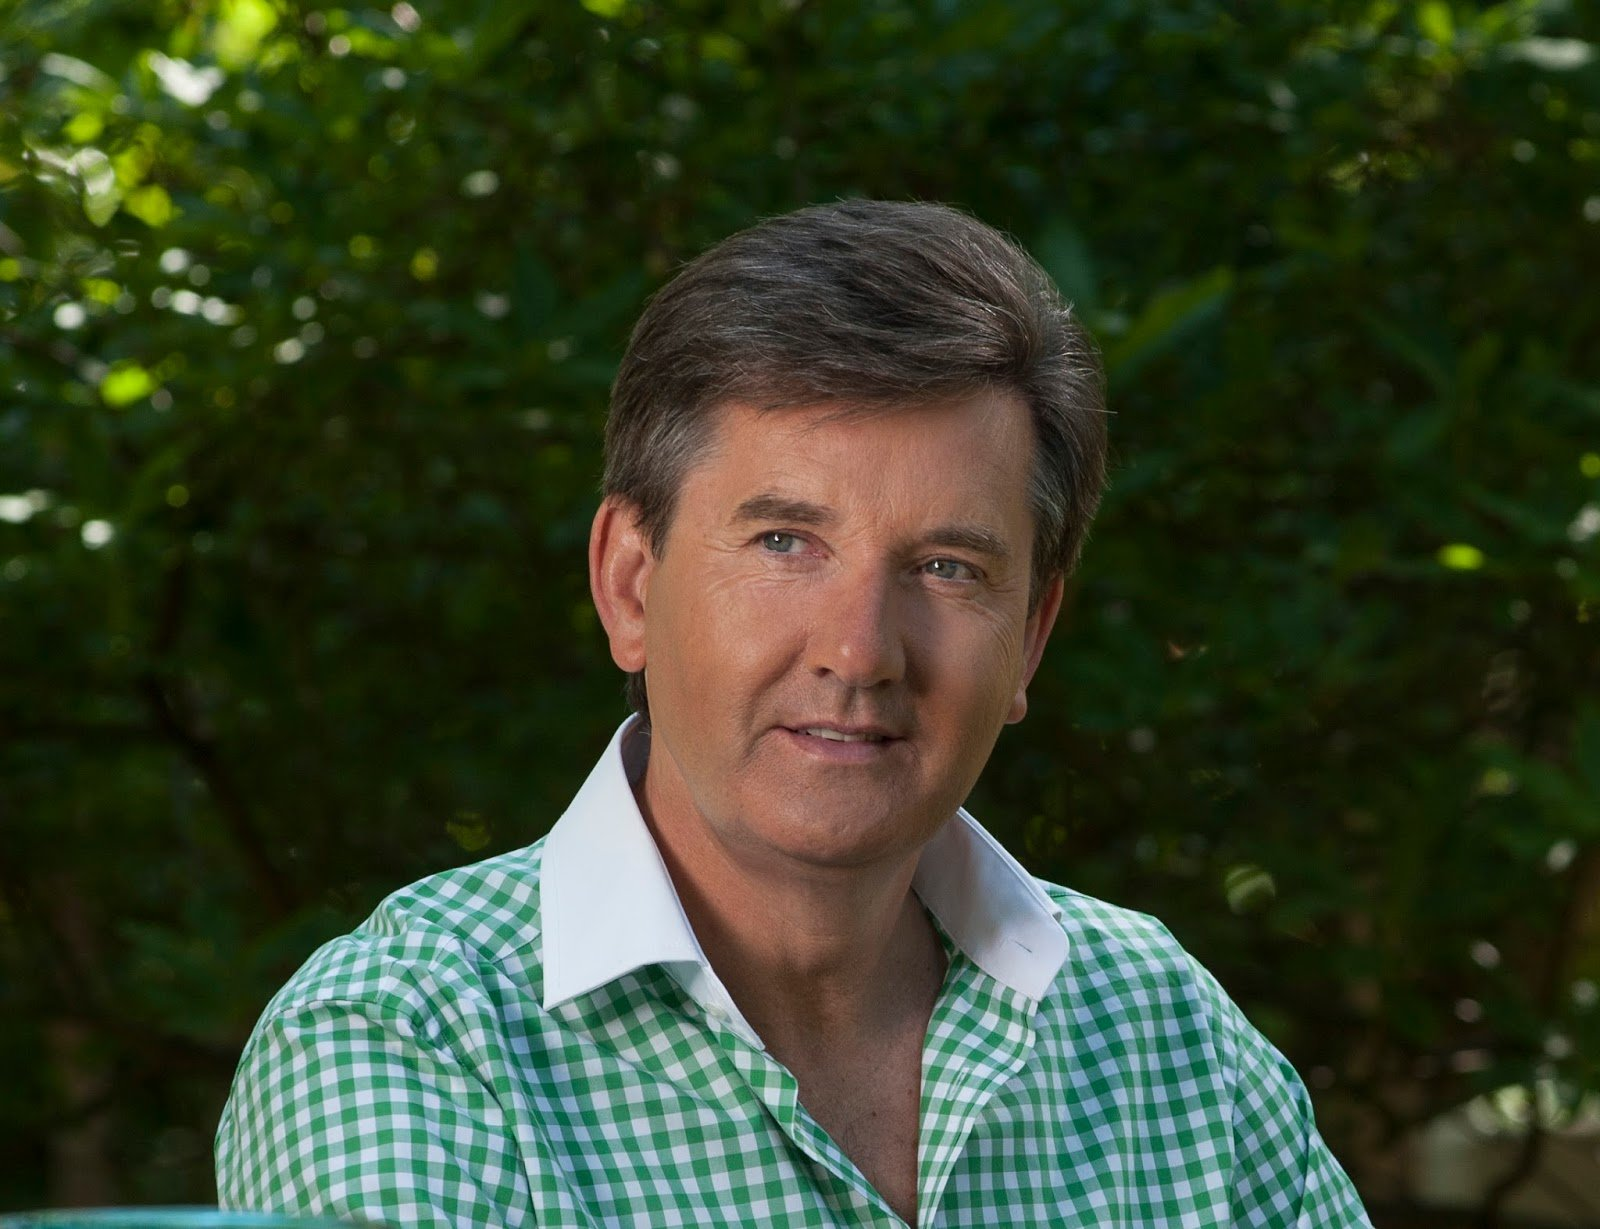 Faircity Country Star Daniel O Donnell To Make Appearance On